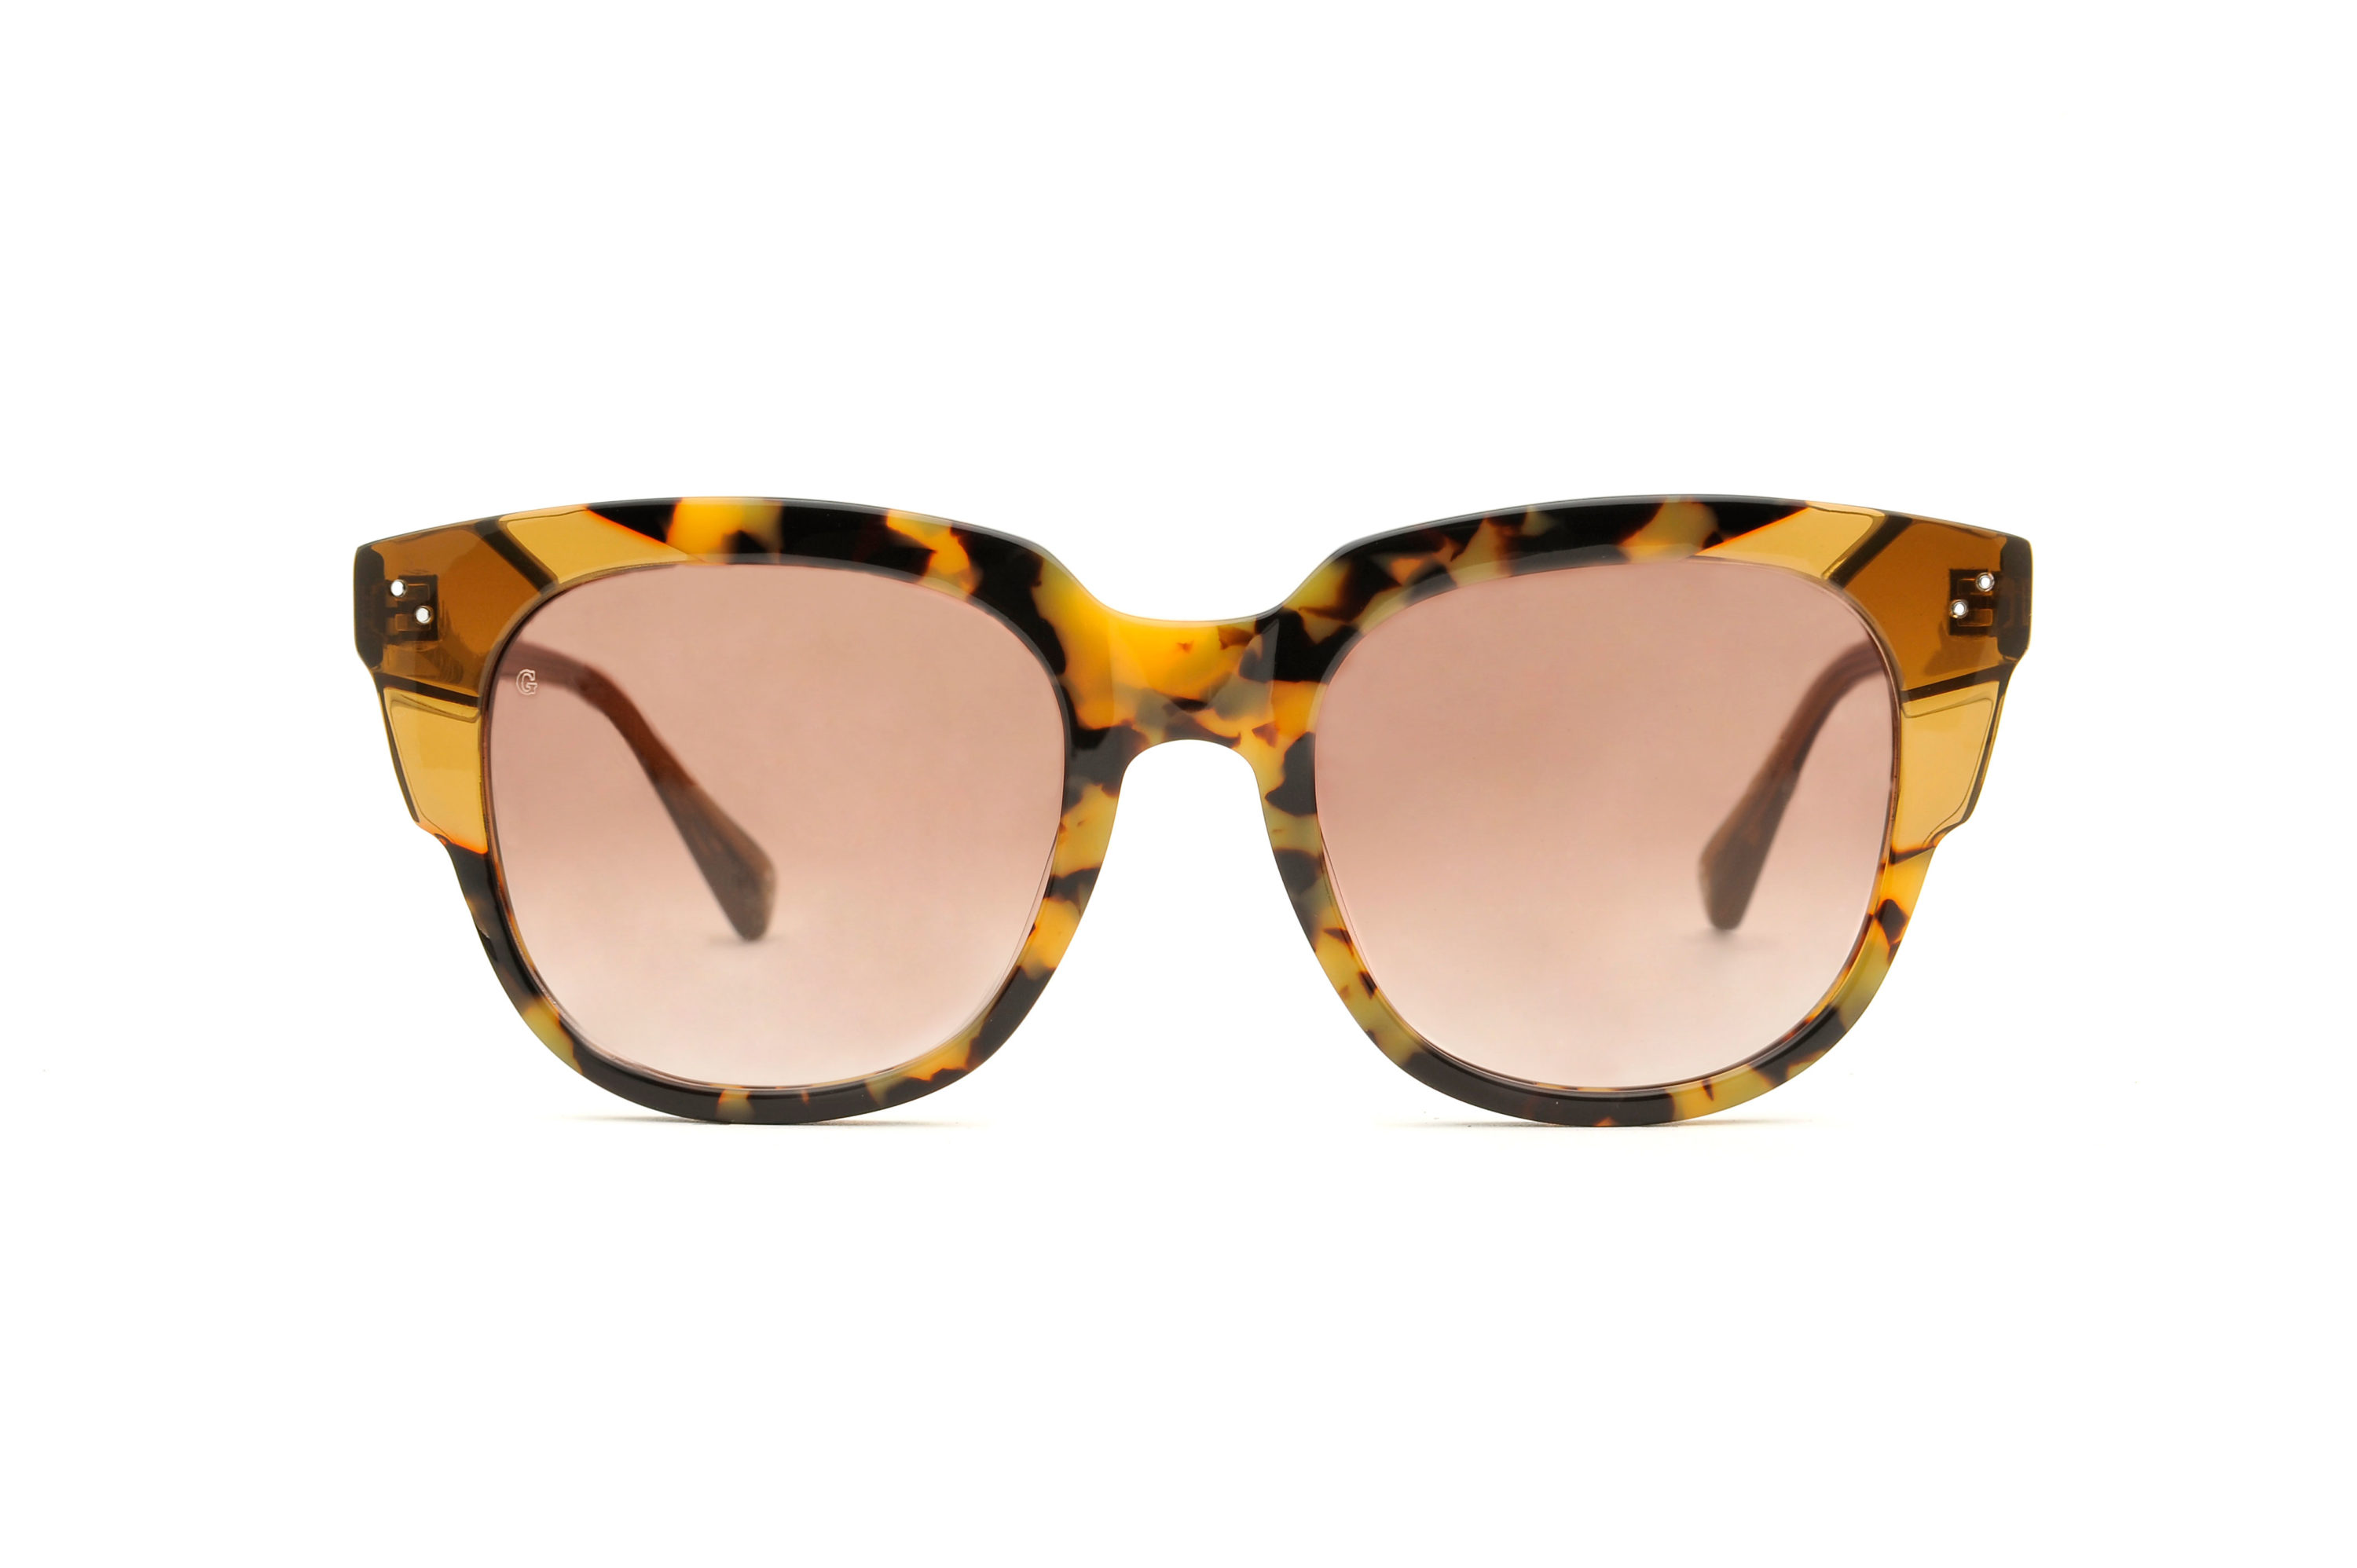 Lily acetate squared tortoise sunglasses by GIGI Studios